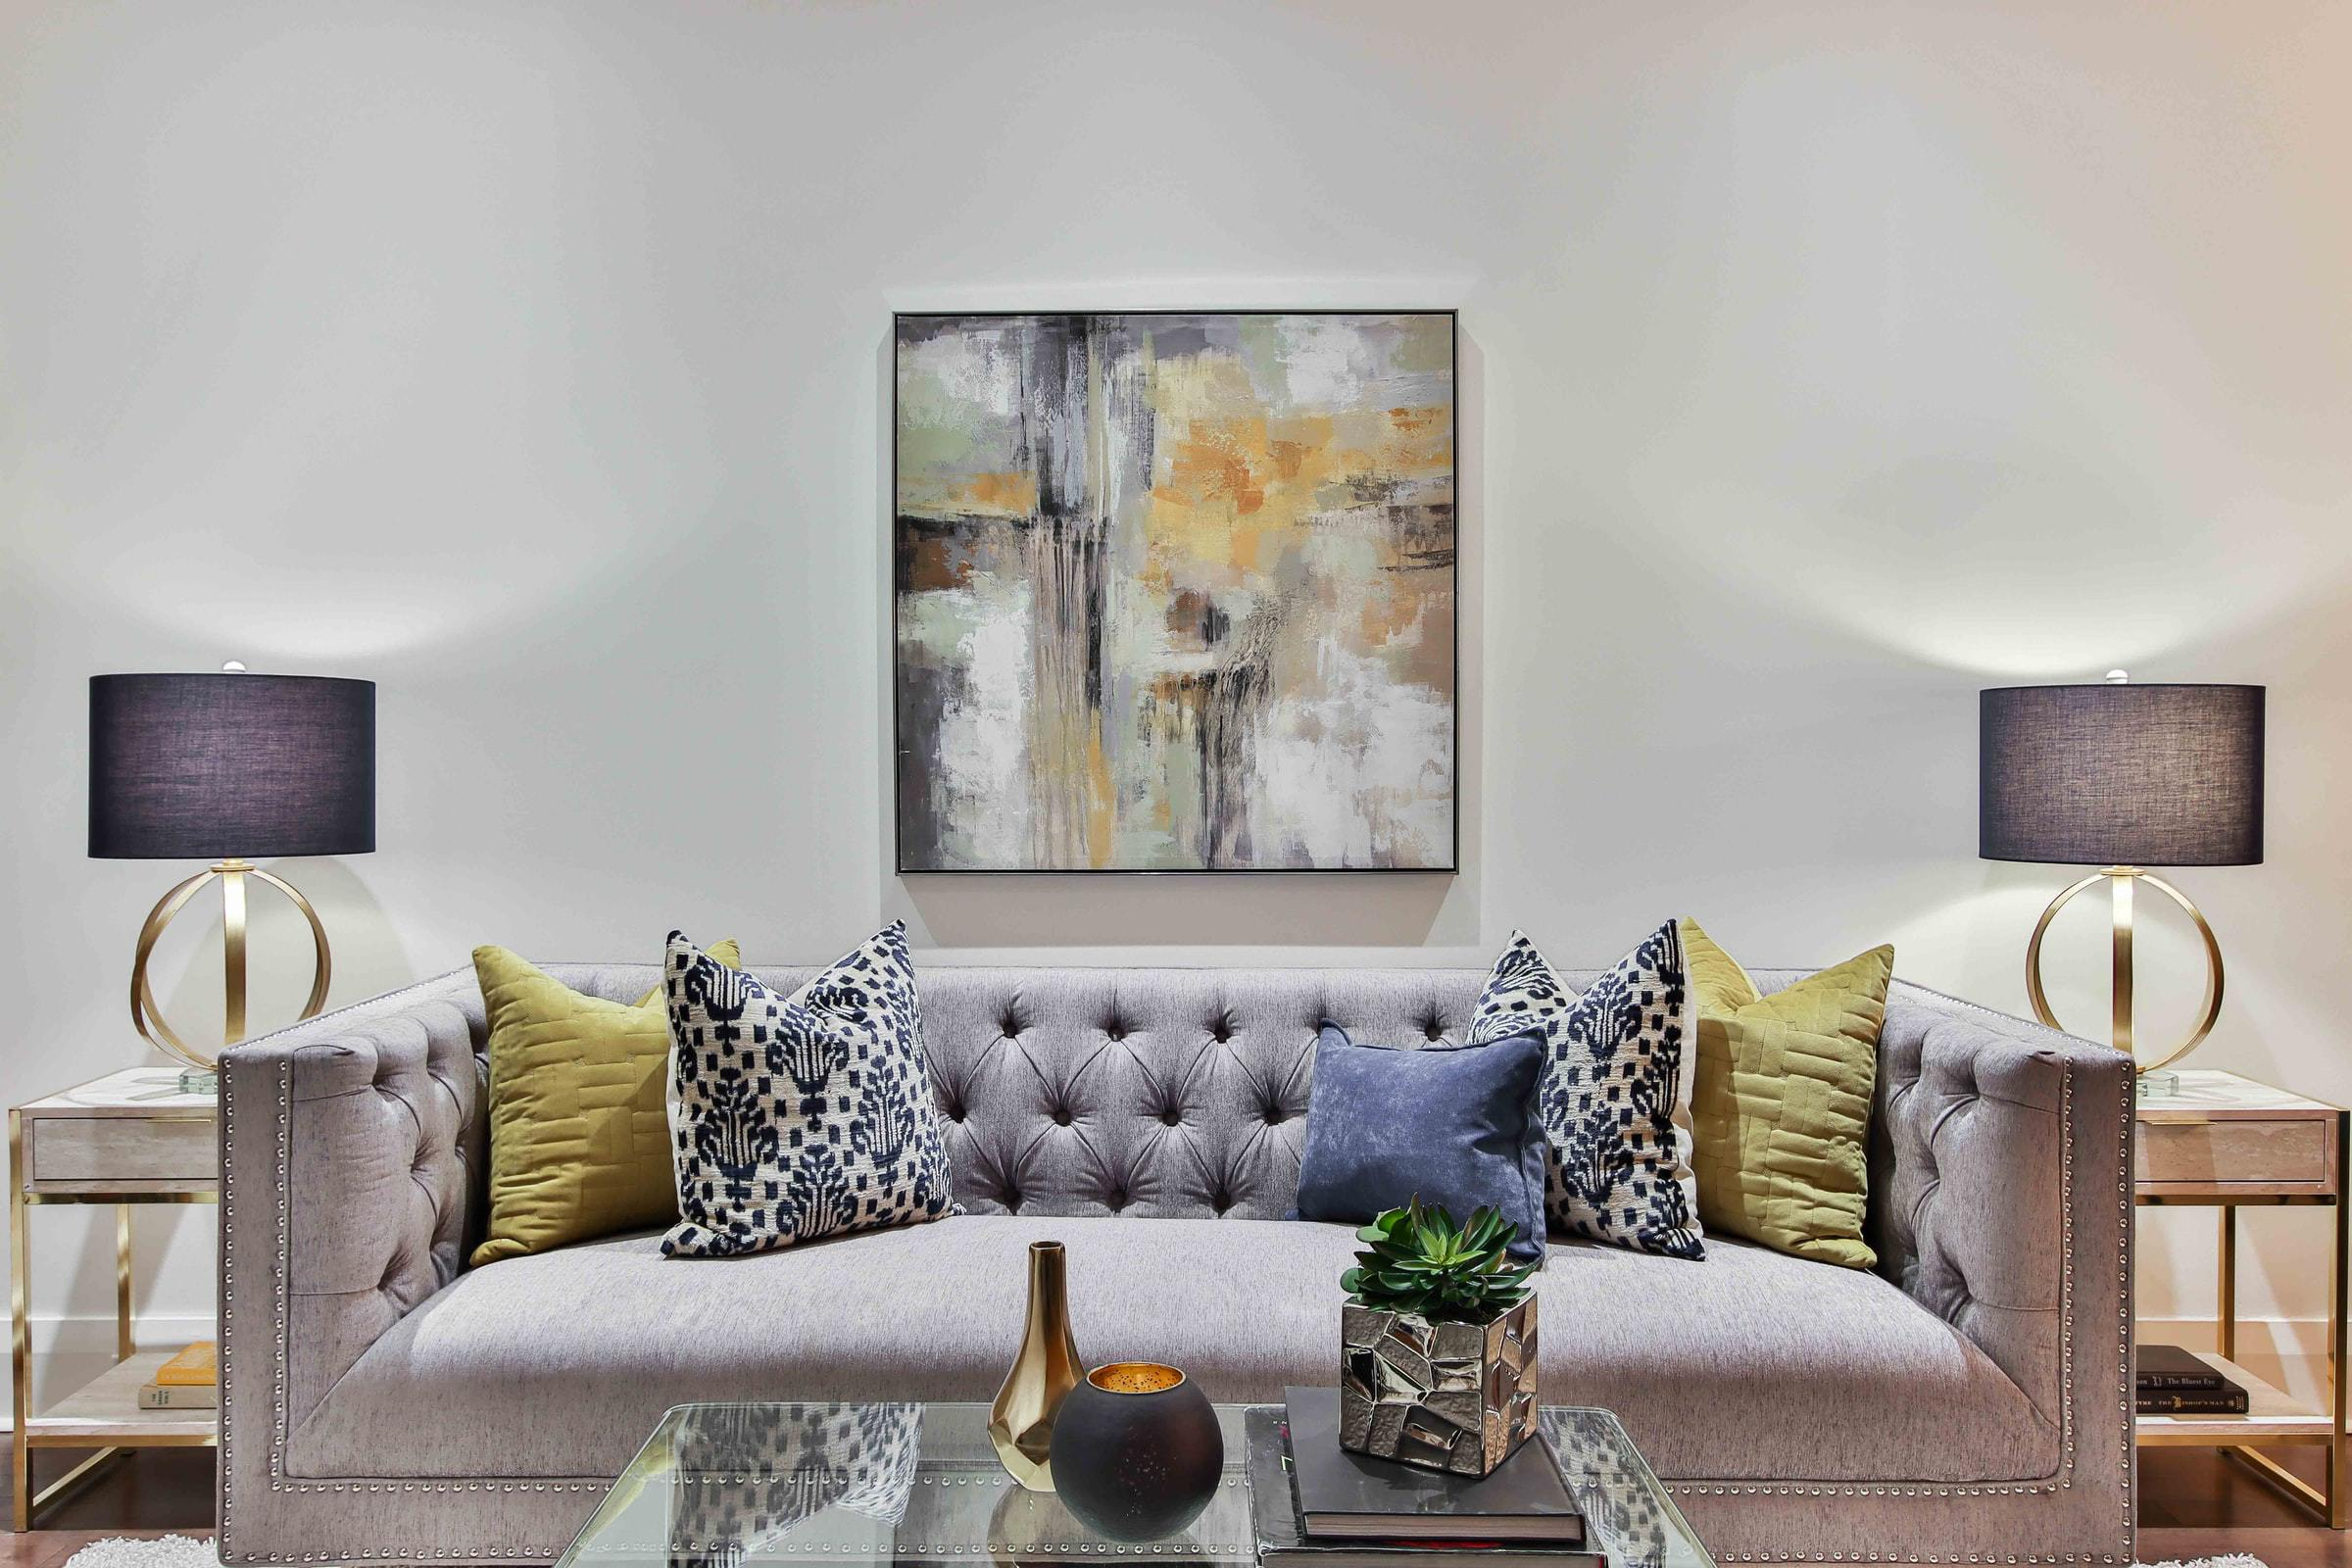 Mix up Patterns and Colors for an Eclectic Look